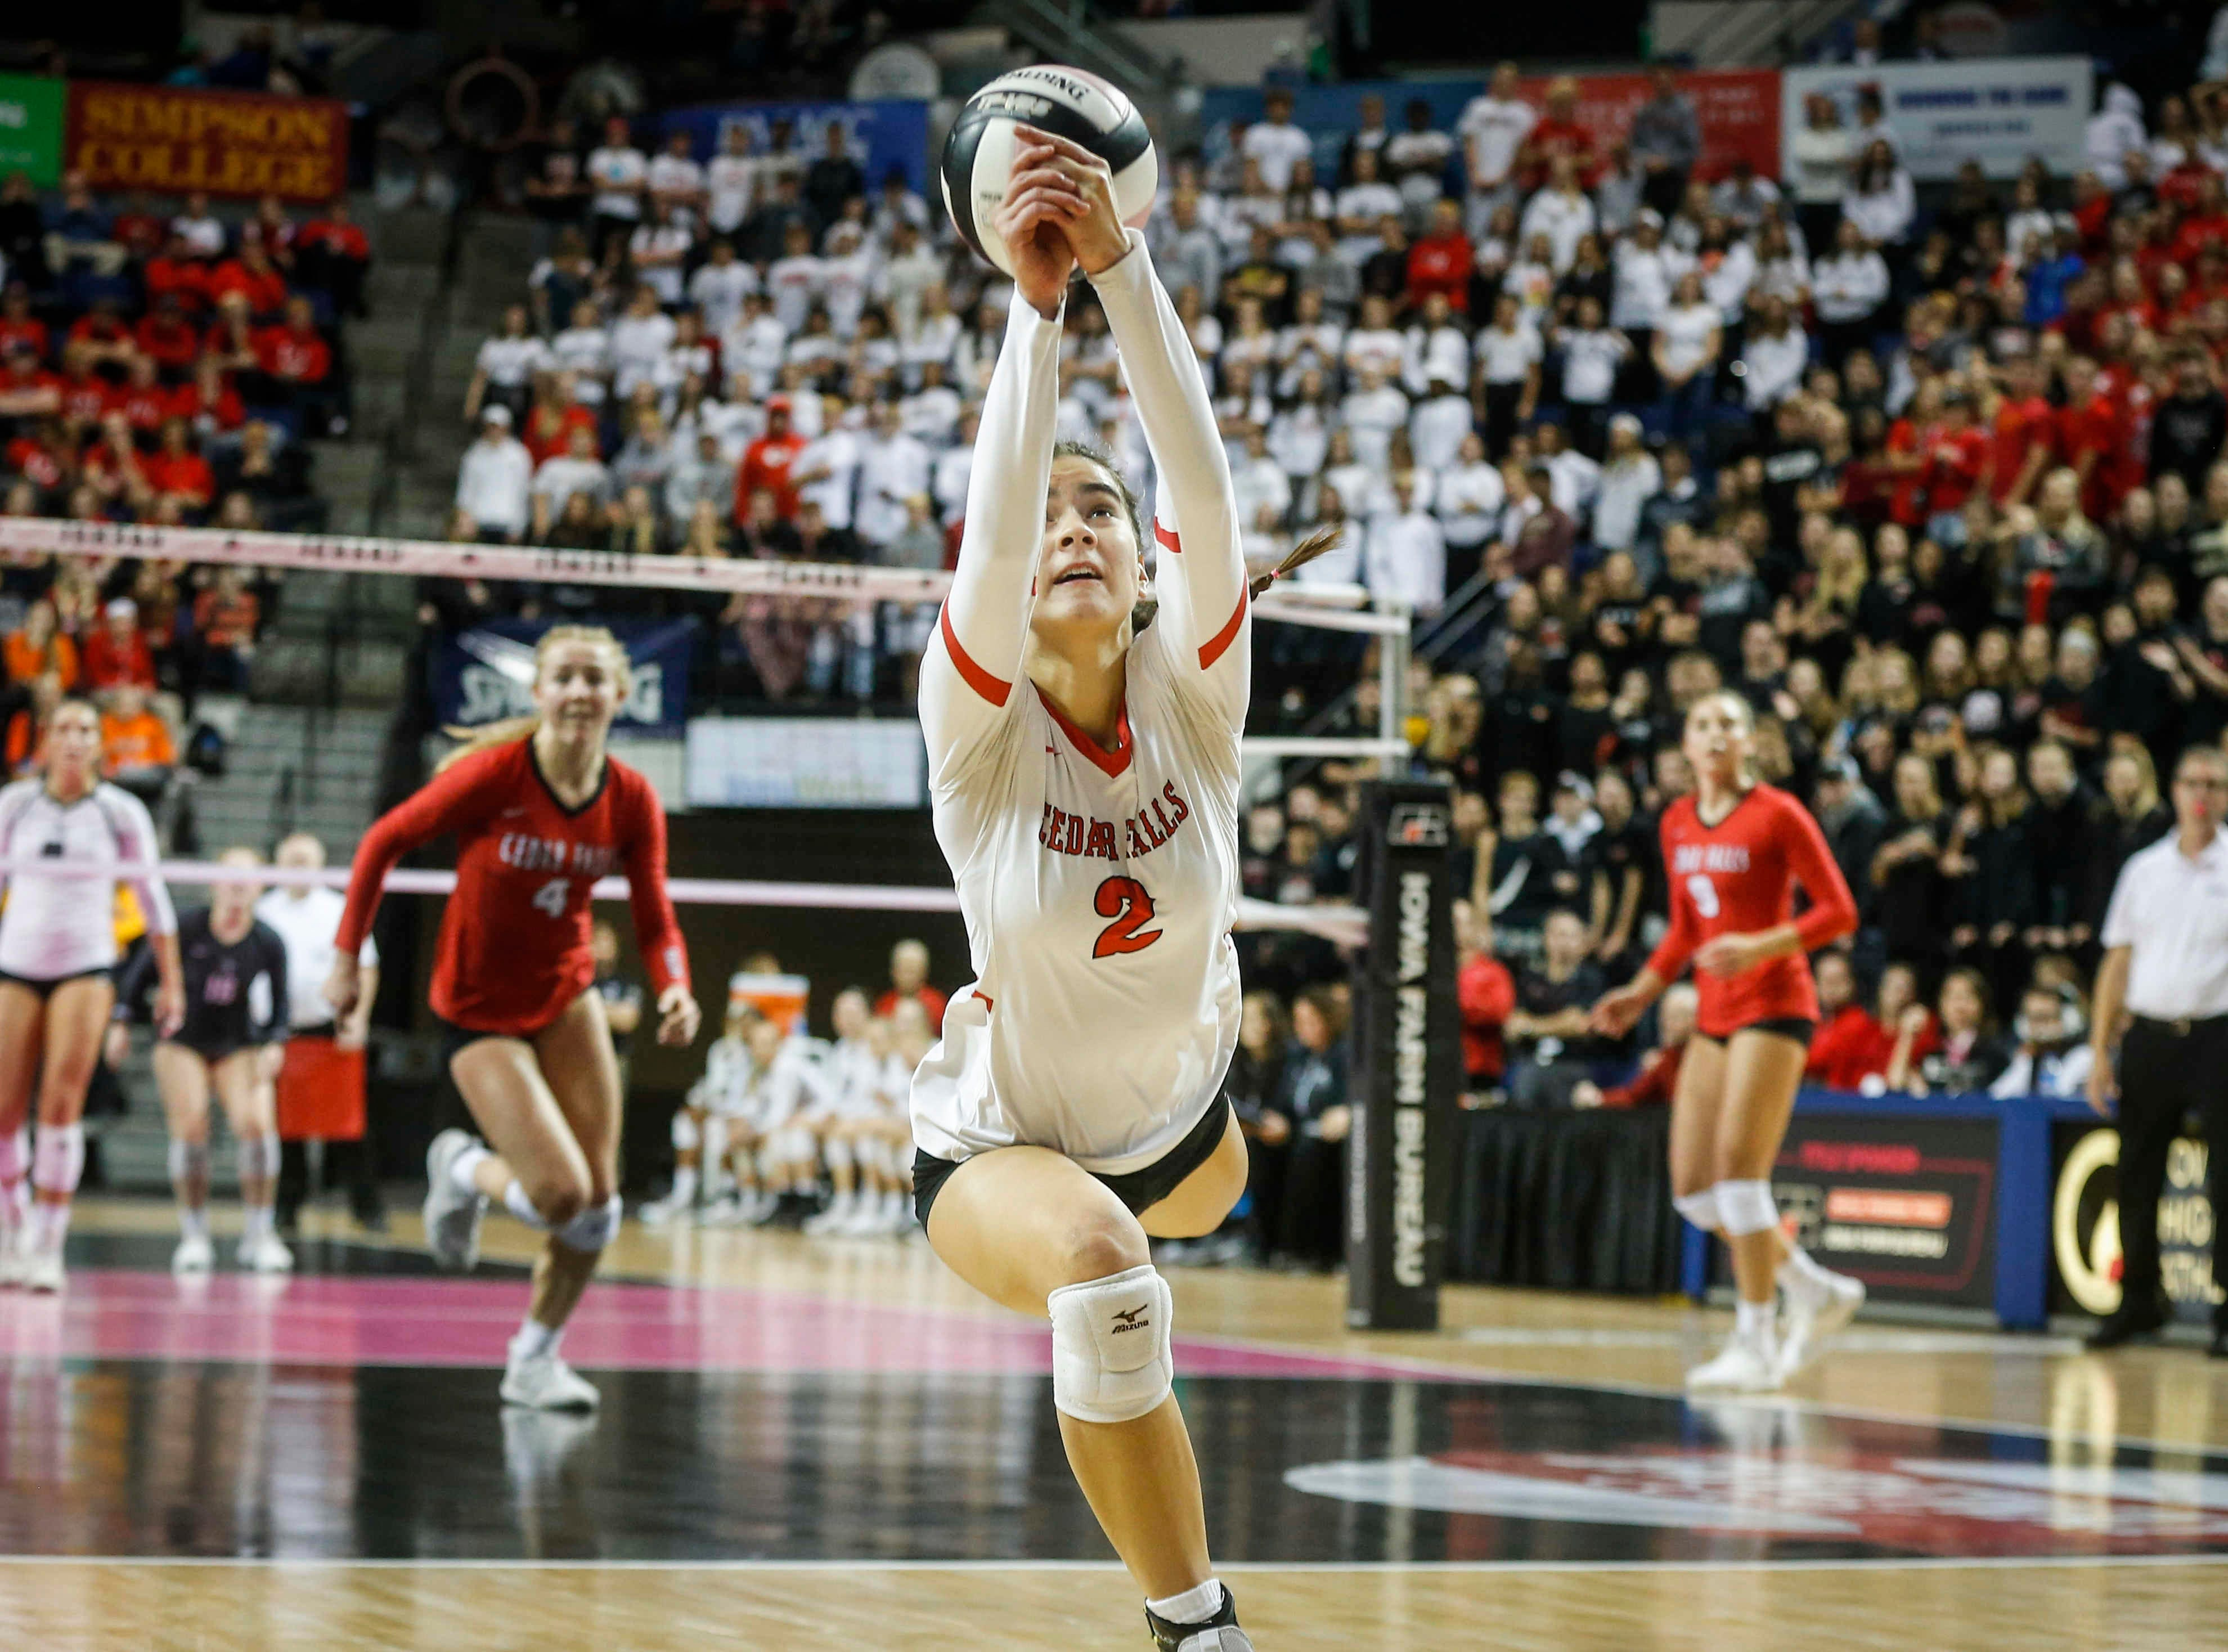 Cedar Falls' Kirsten Graves dives to save the ball against Ankeny Centennial during the Class 5A state volleyball tournament championship game on Friday, Nov. 9, 2018, in Cedar Rapids.